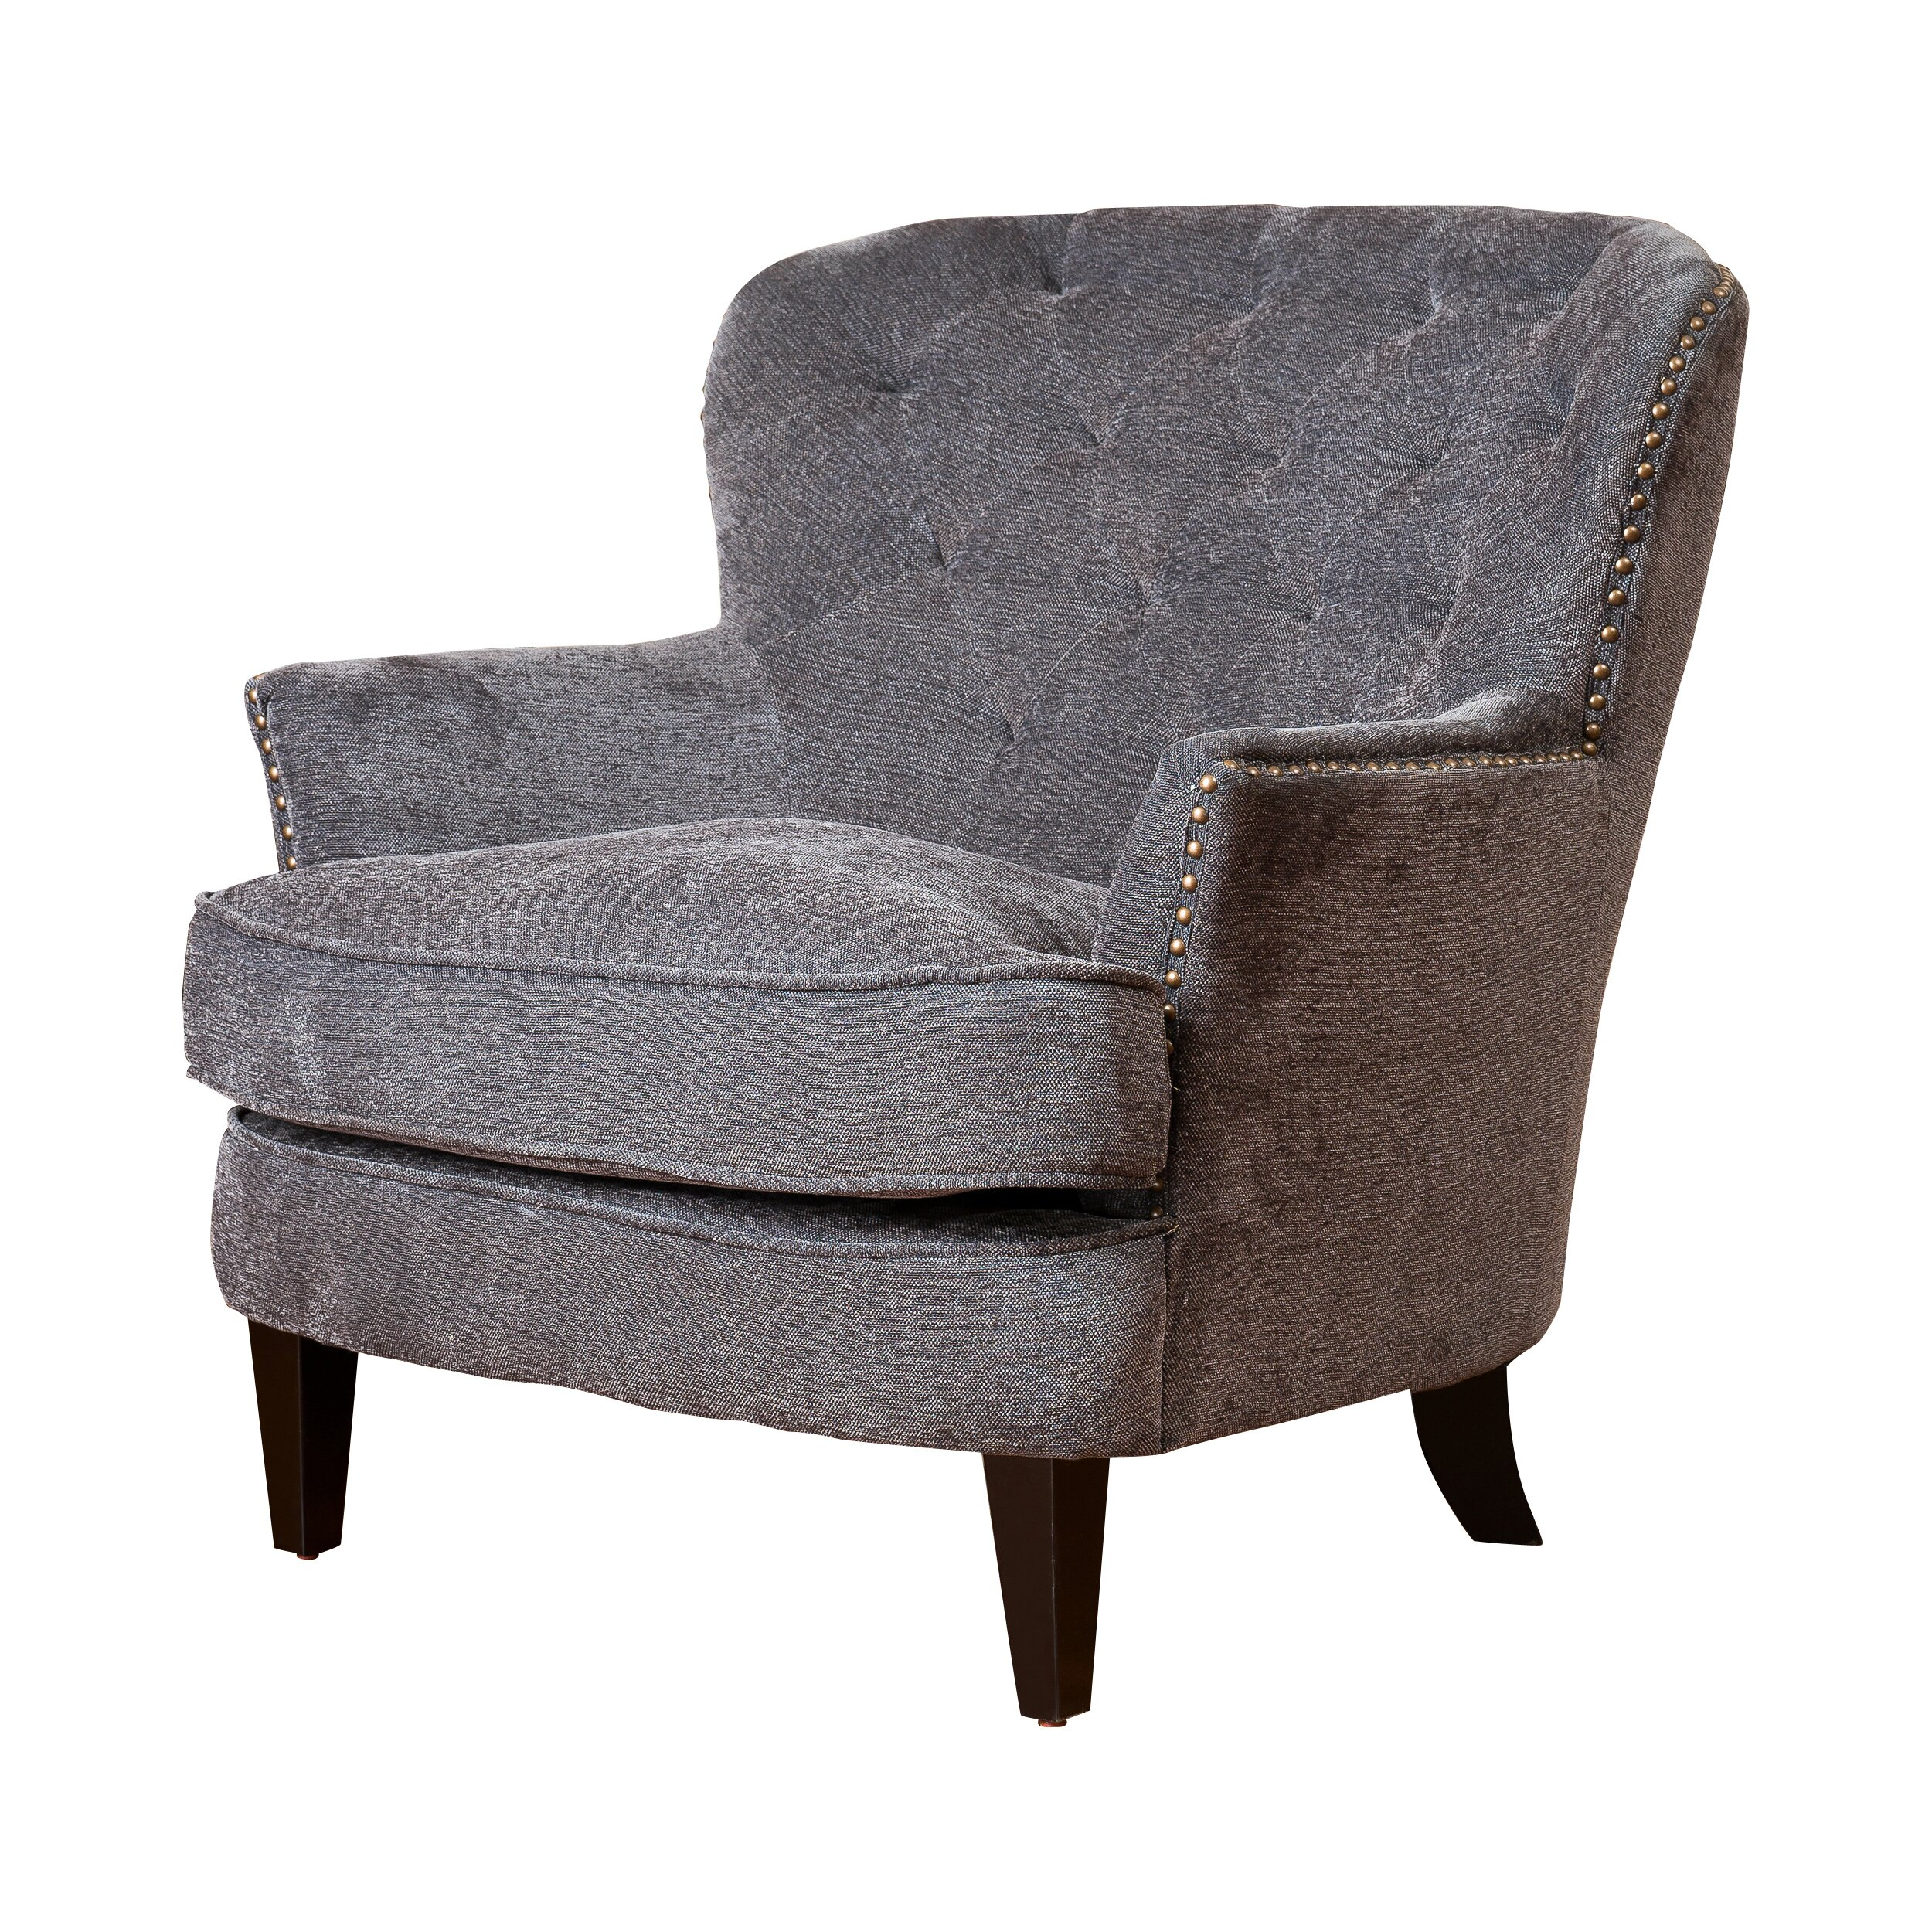 Lounge Chairs For Bedroom House Of Hampton Greene Tufted Upholstered Linen Club